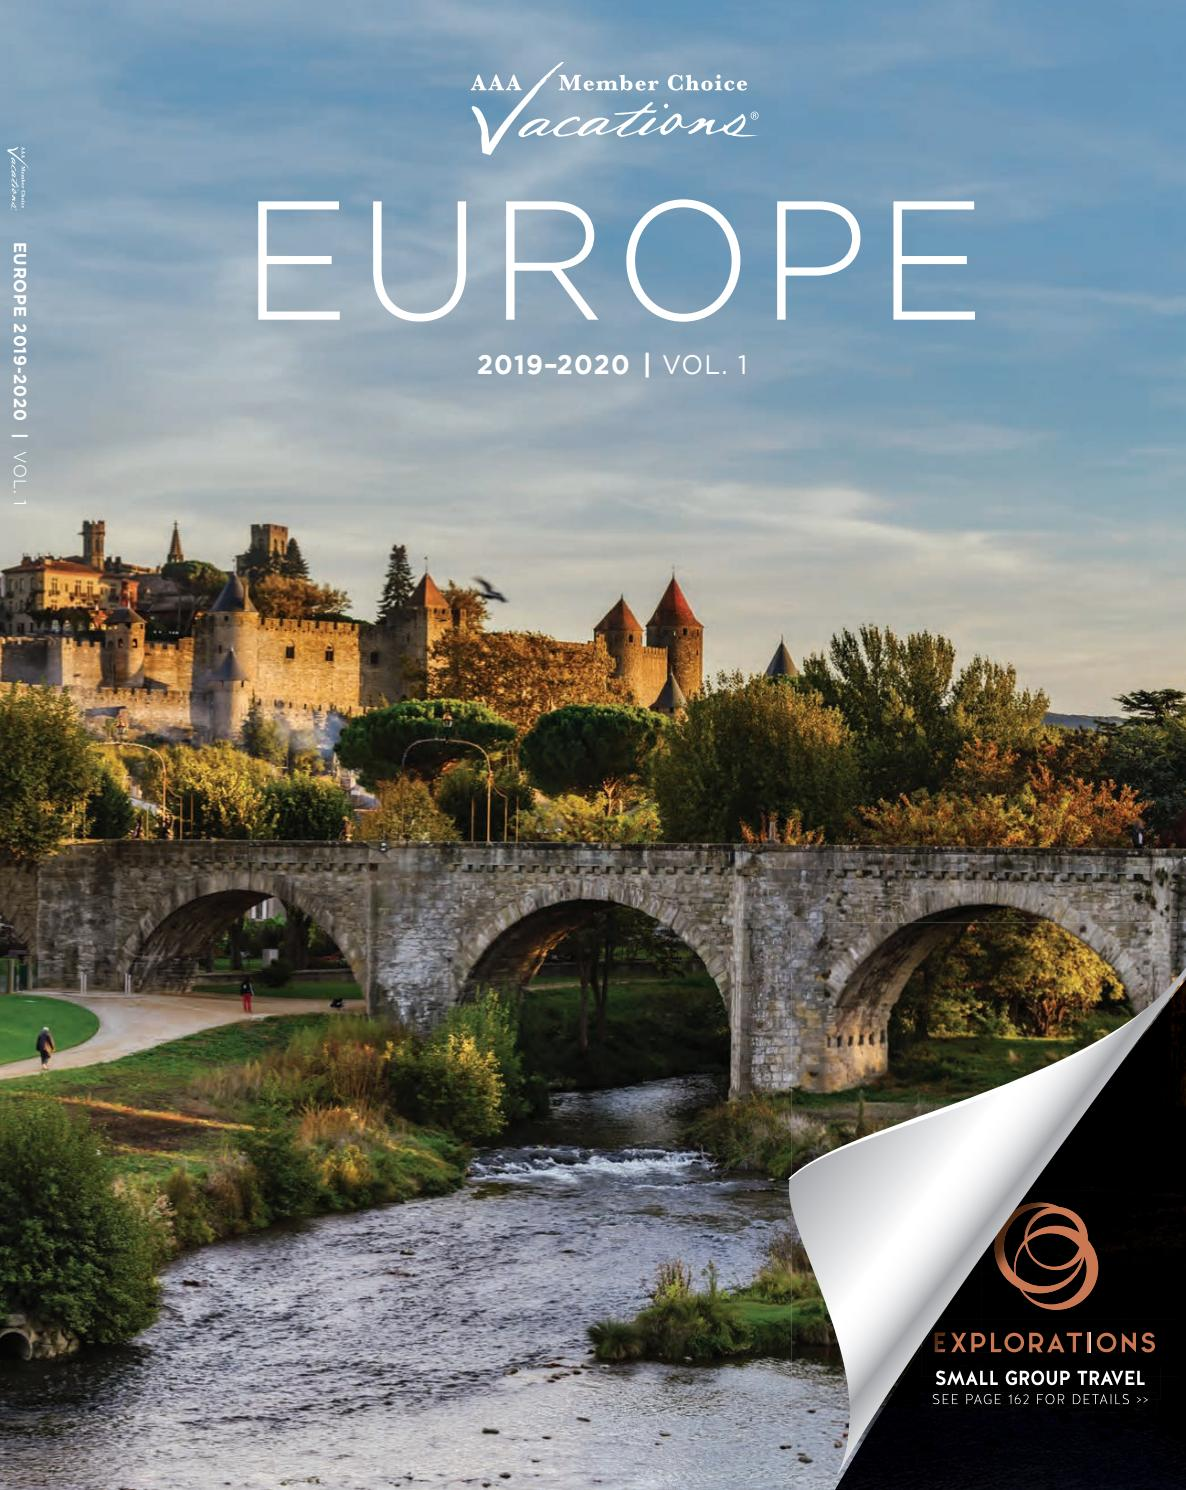 2019 2020 Europe AAA by Collette - issuu